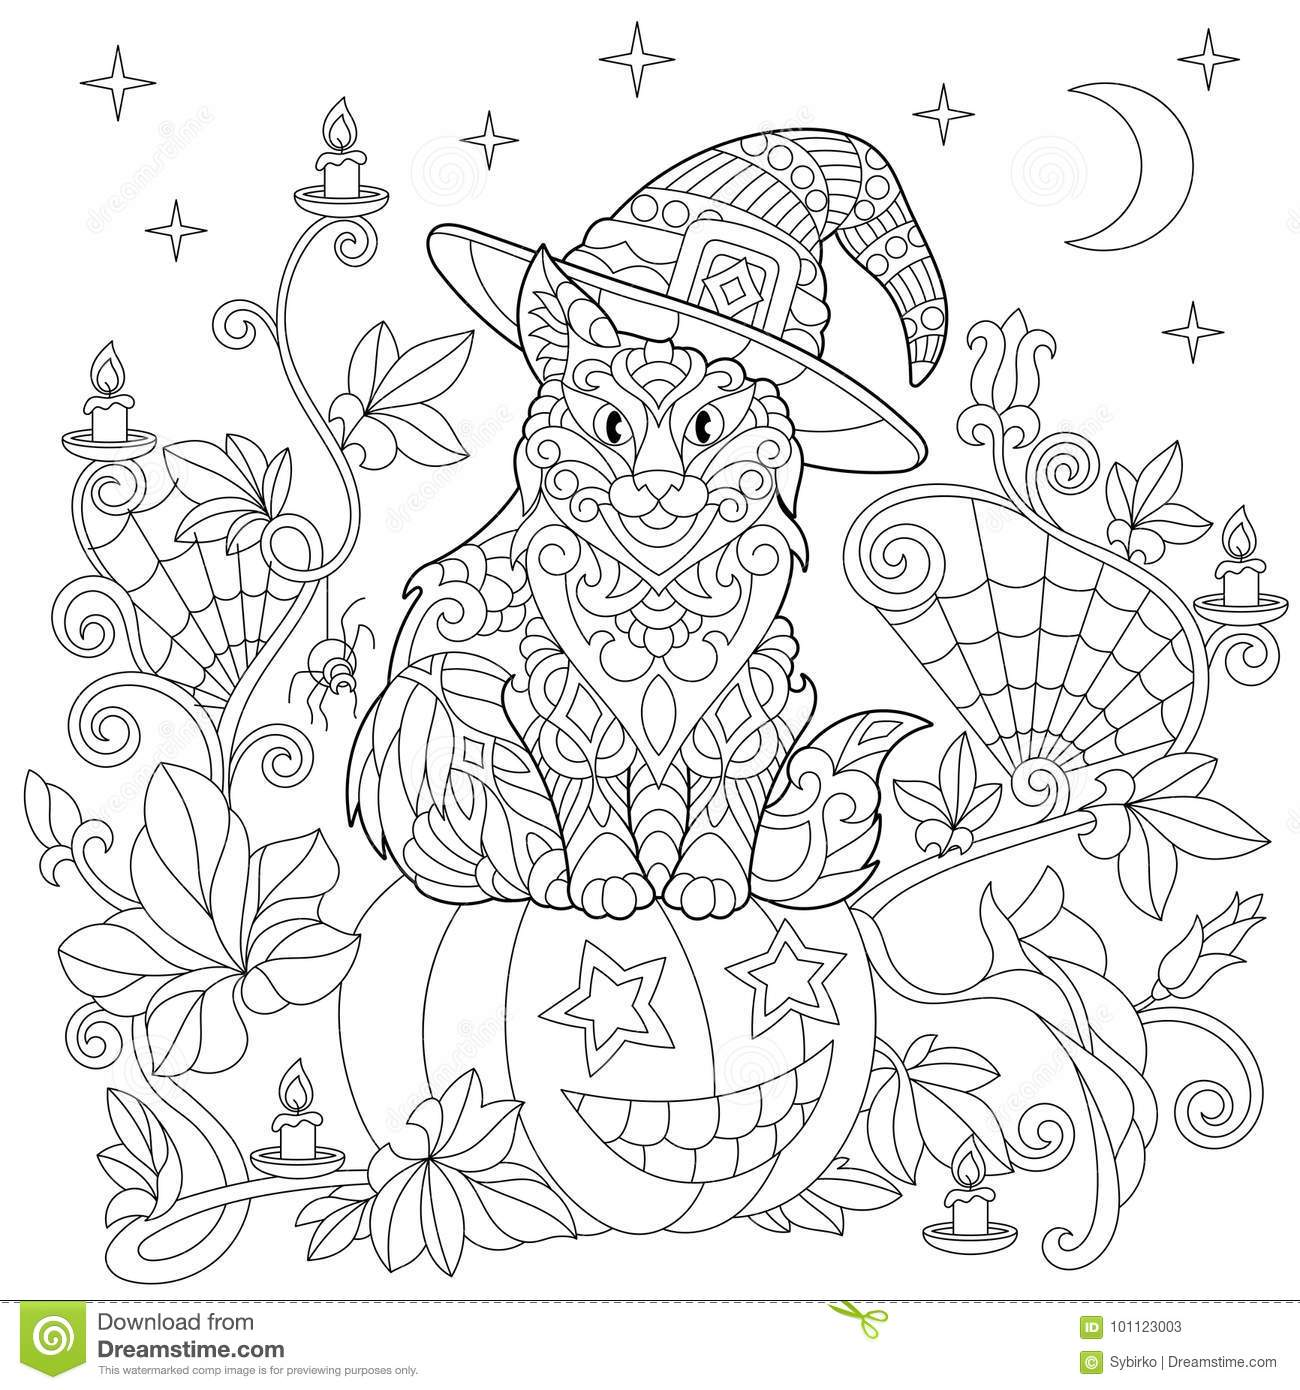 Zentangle Stylized Halloween Coloring Page Stock Vector